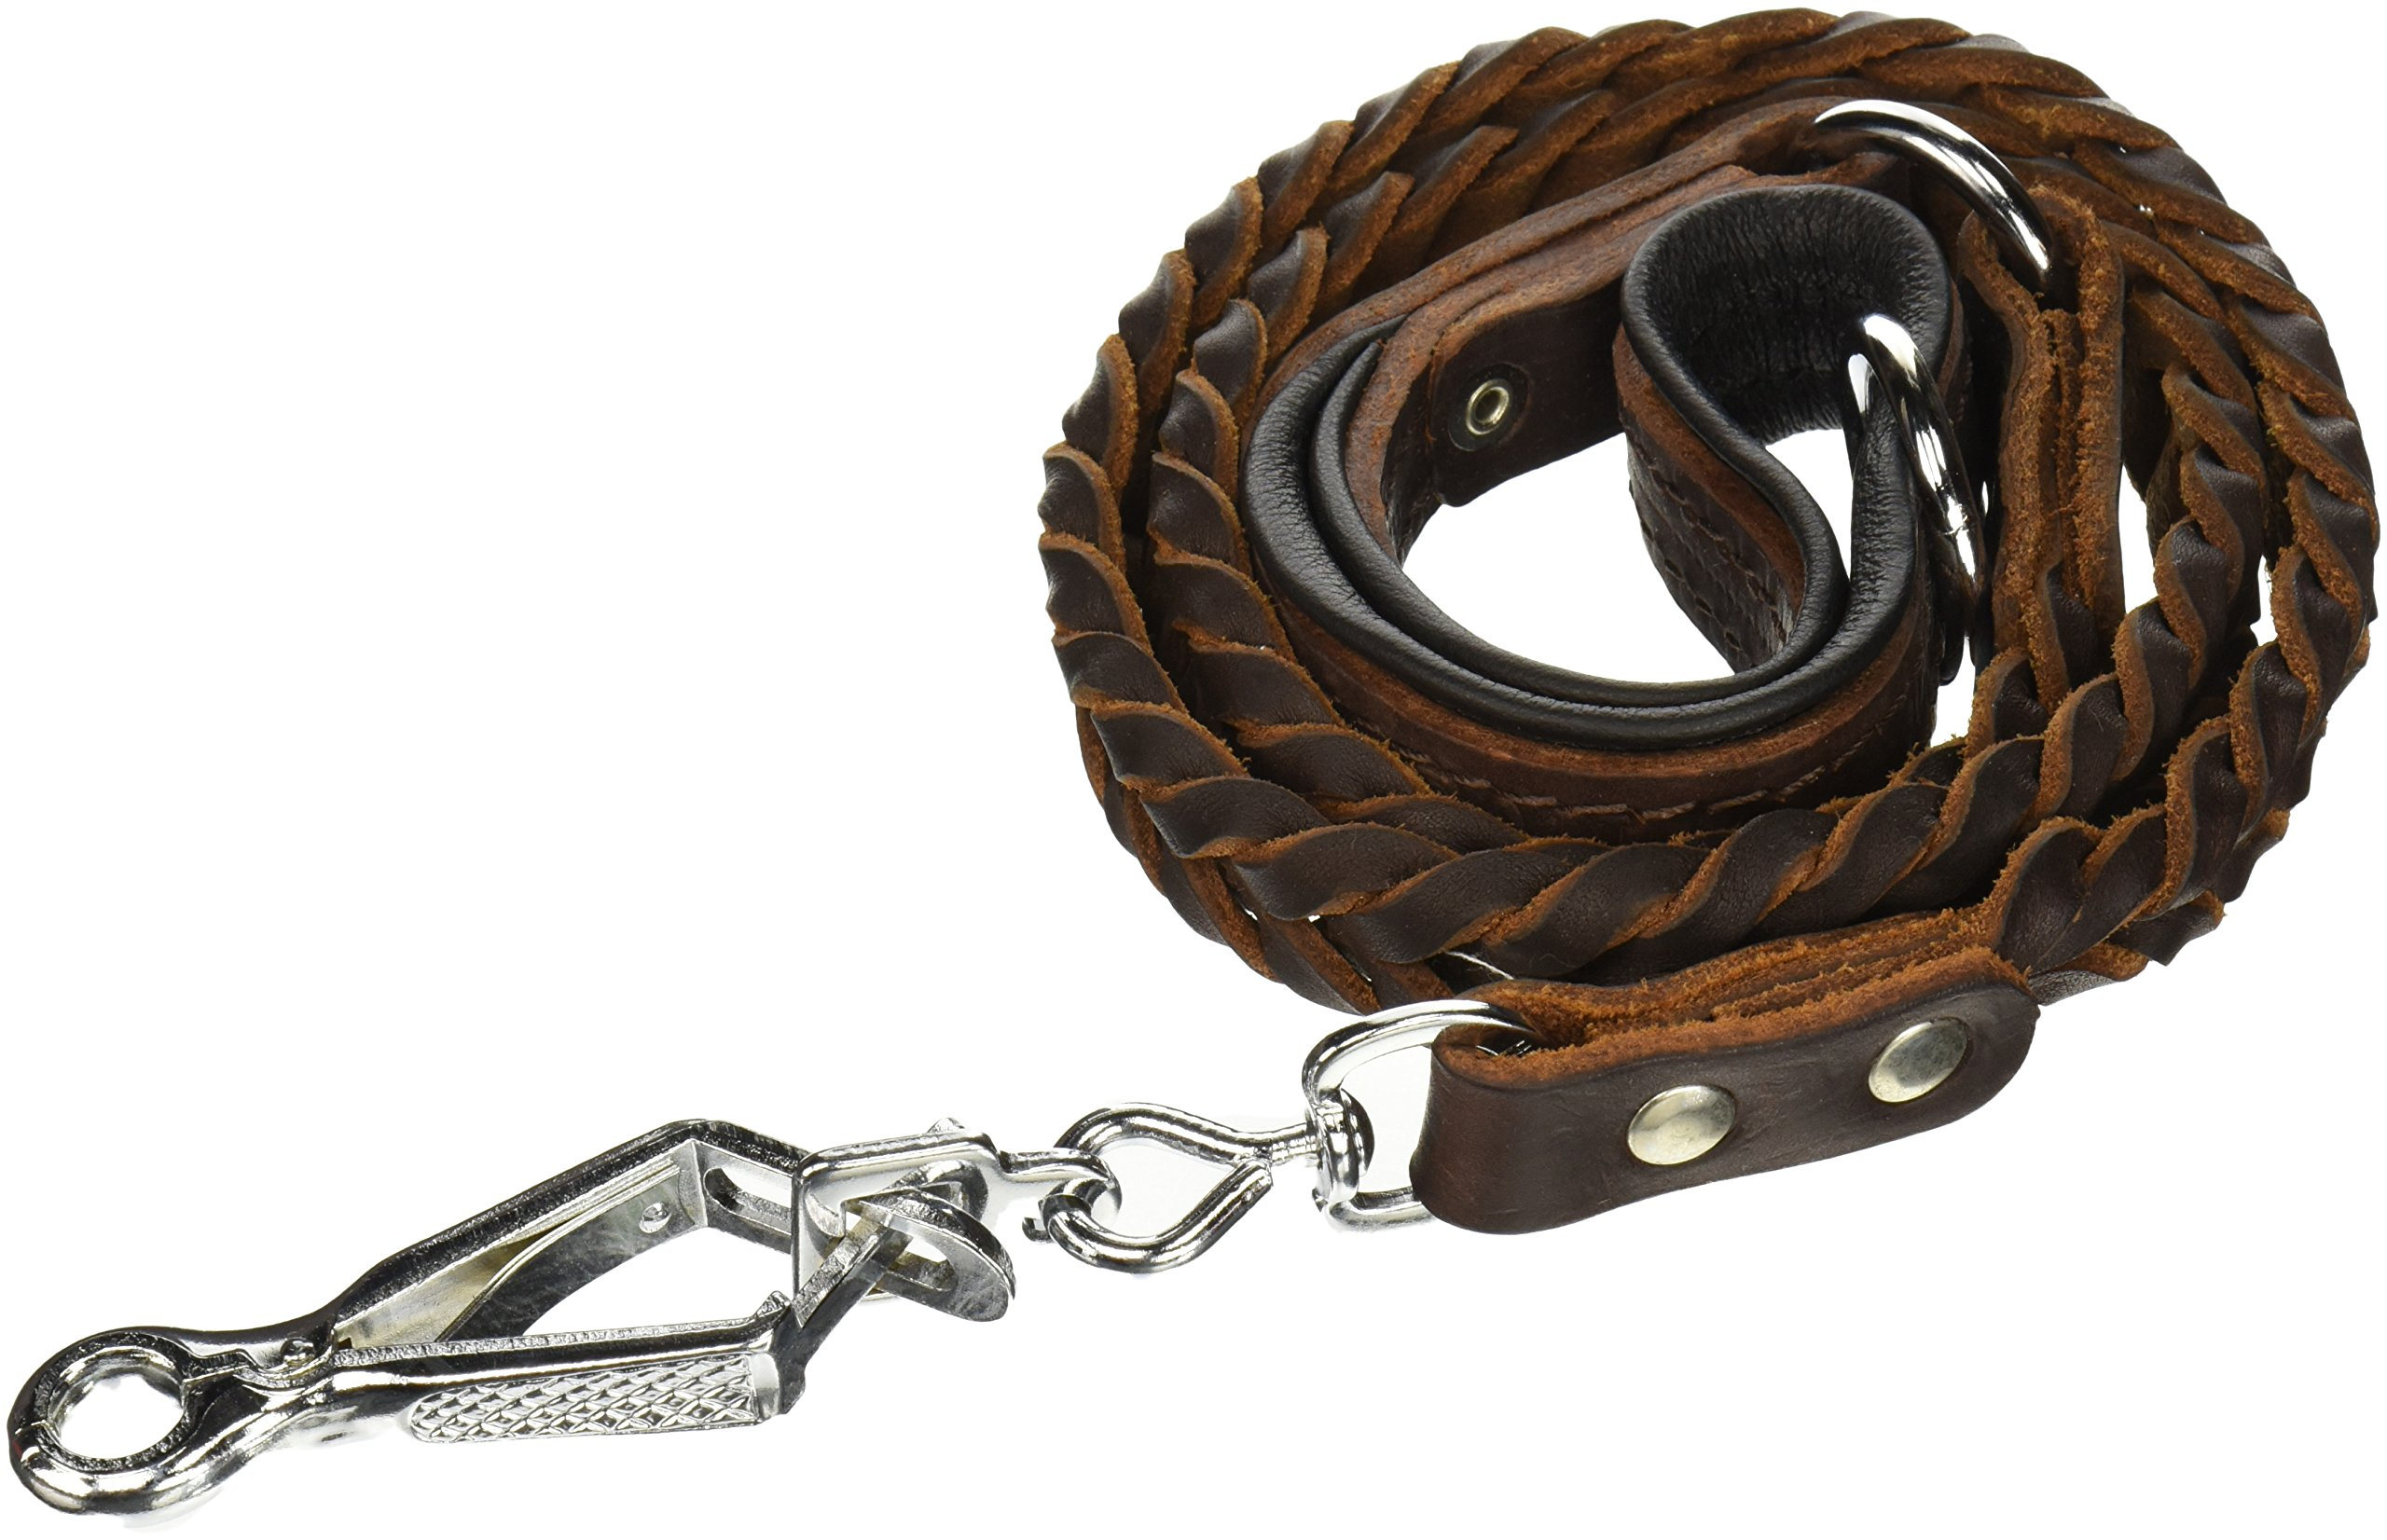 Dean & Tyler Comfort Braid Black Padding Dog Leash with Stainless Steel Ring on Handle and Herm Sprenger Hardware, 4-Feet by 3/4-Inch, Brown